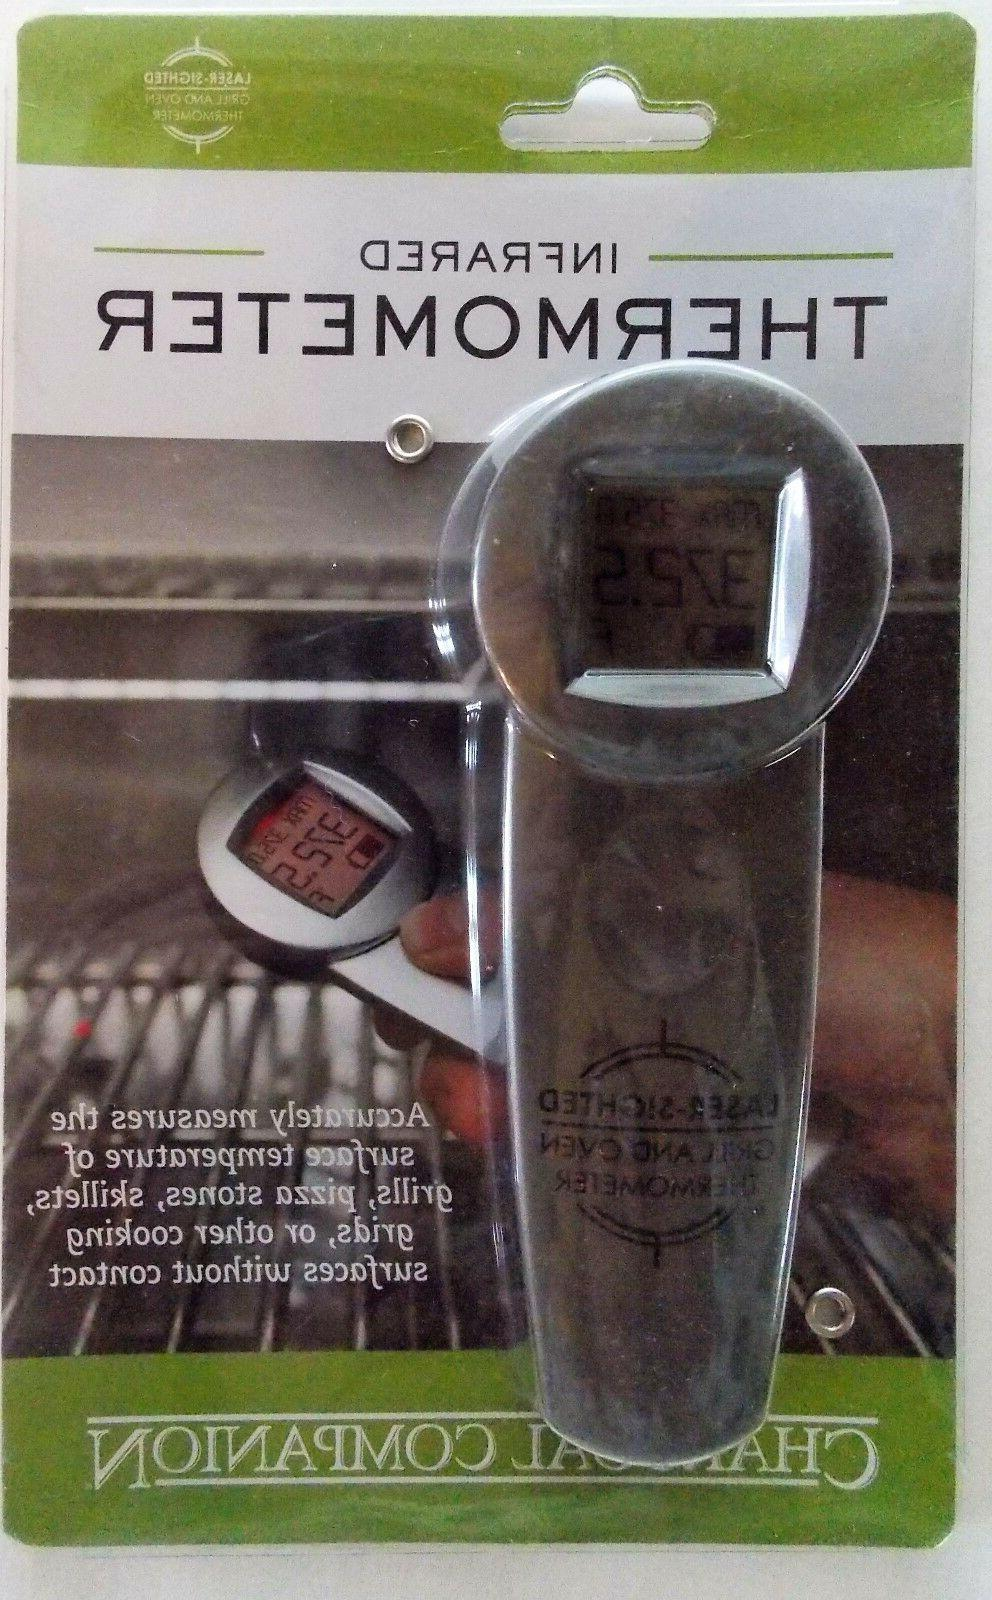 infrared grill and oven thermometer nip